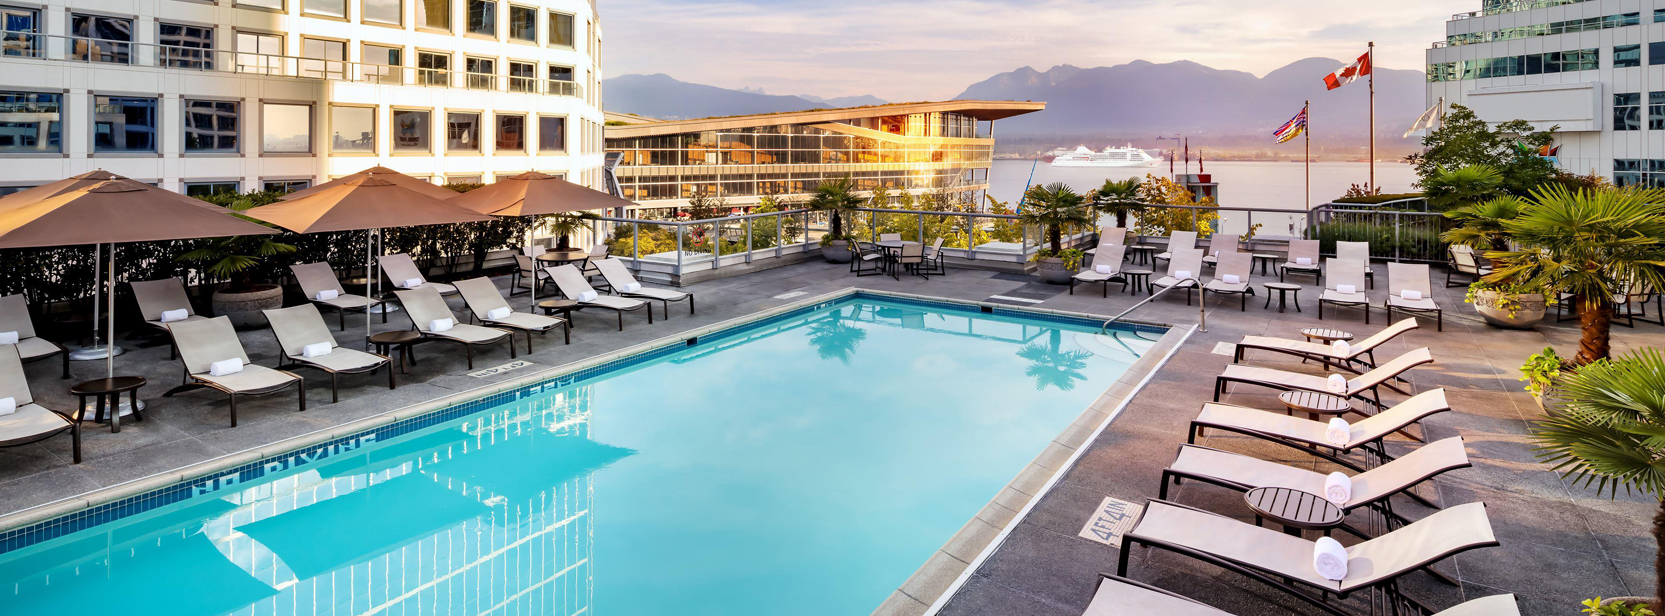 Rooftop Pool at Fairmont Waterfront